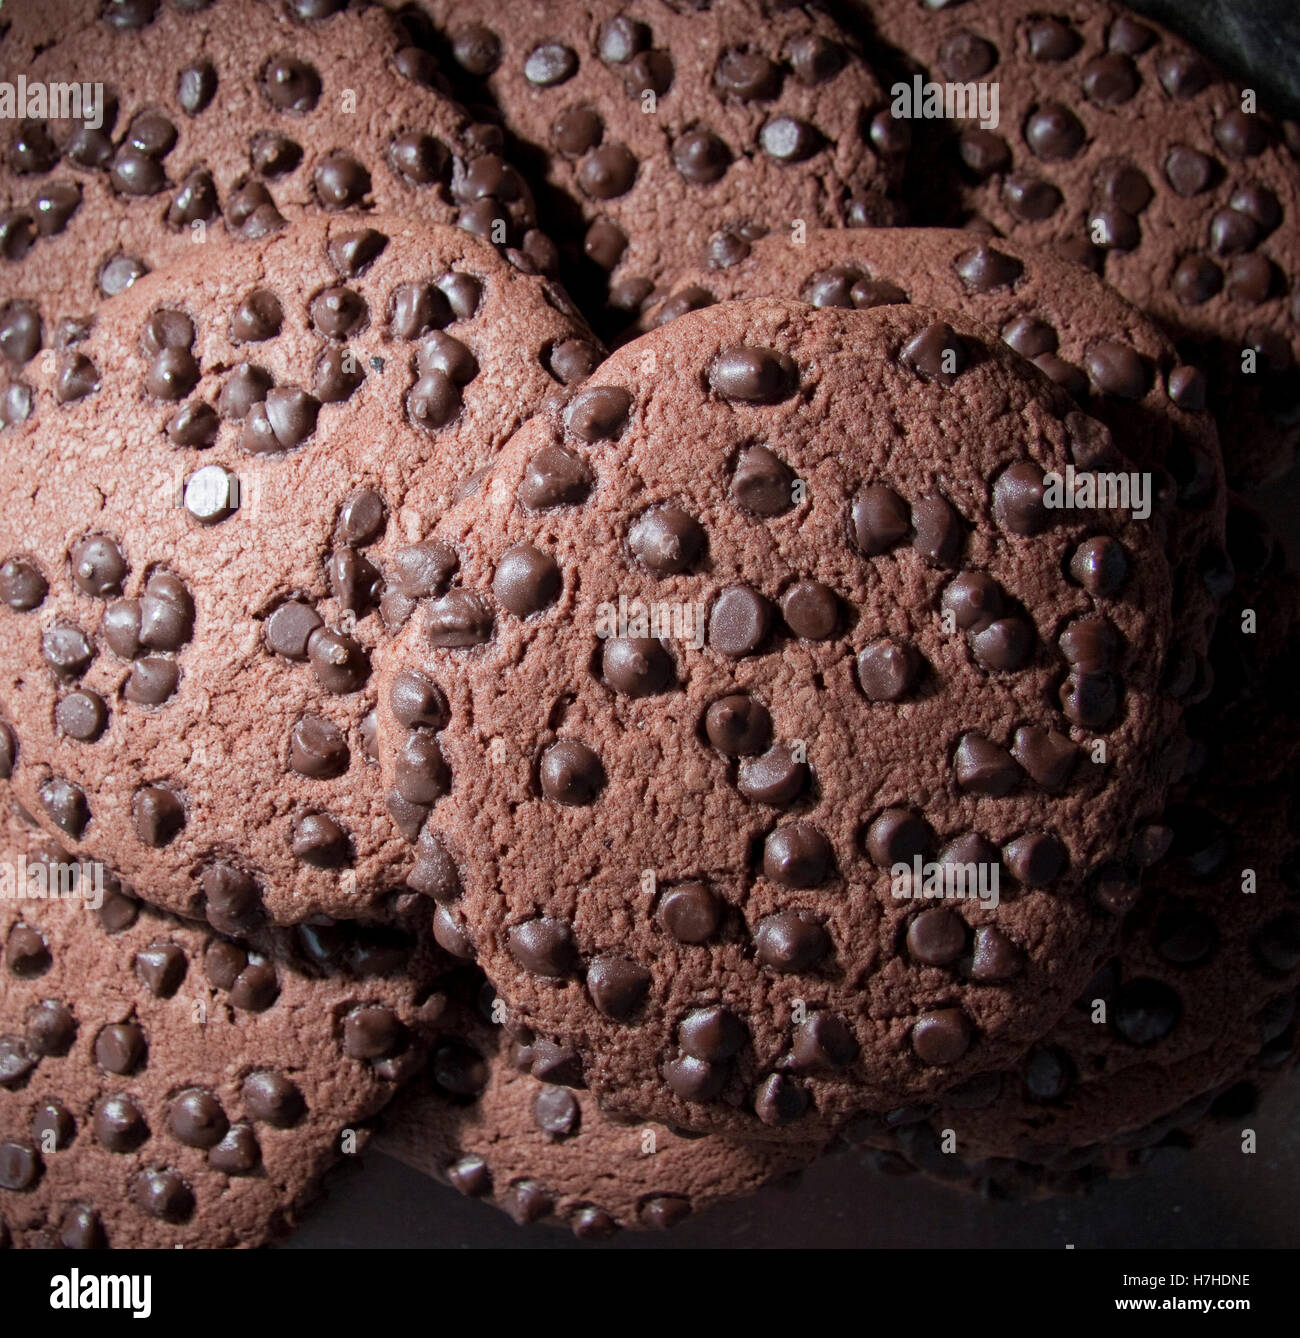 Closeup of chocolate cookies/biscuits - Stock Image